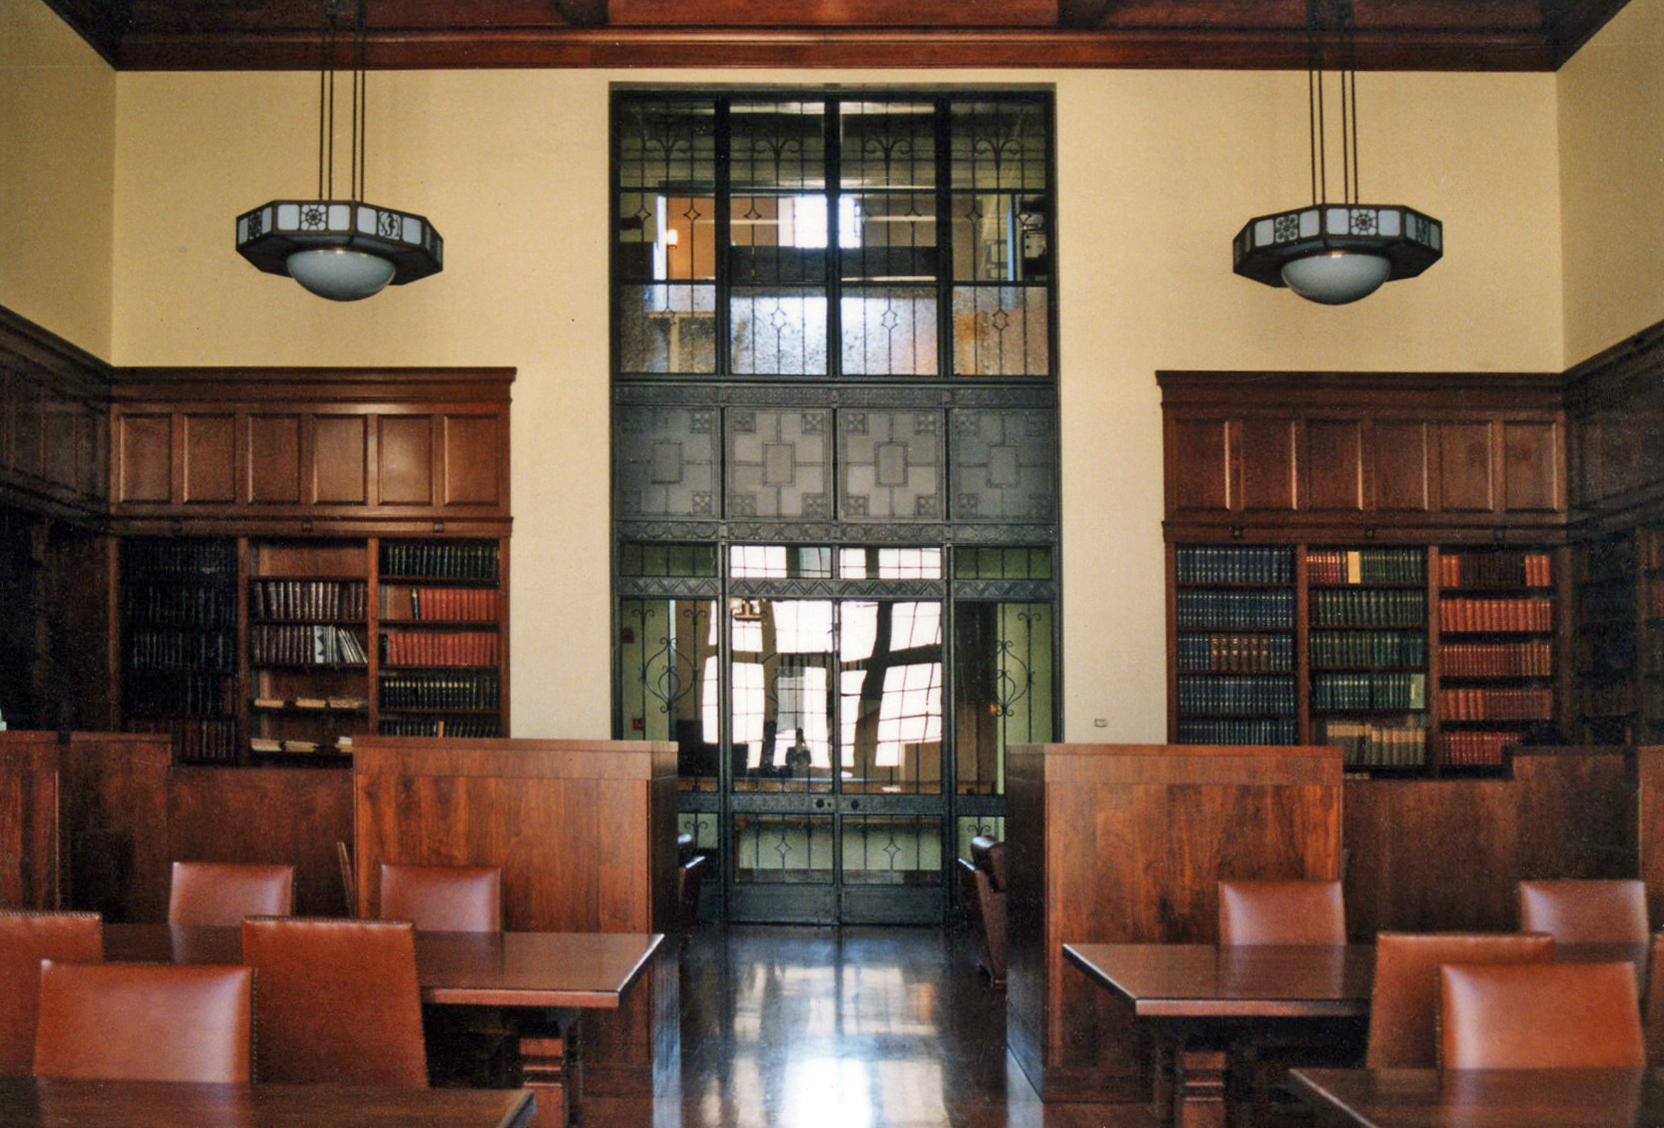 Caltech Morgan Library Kck Architects